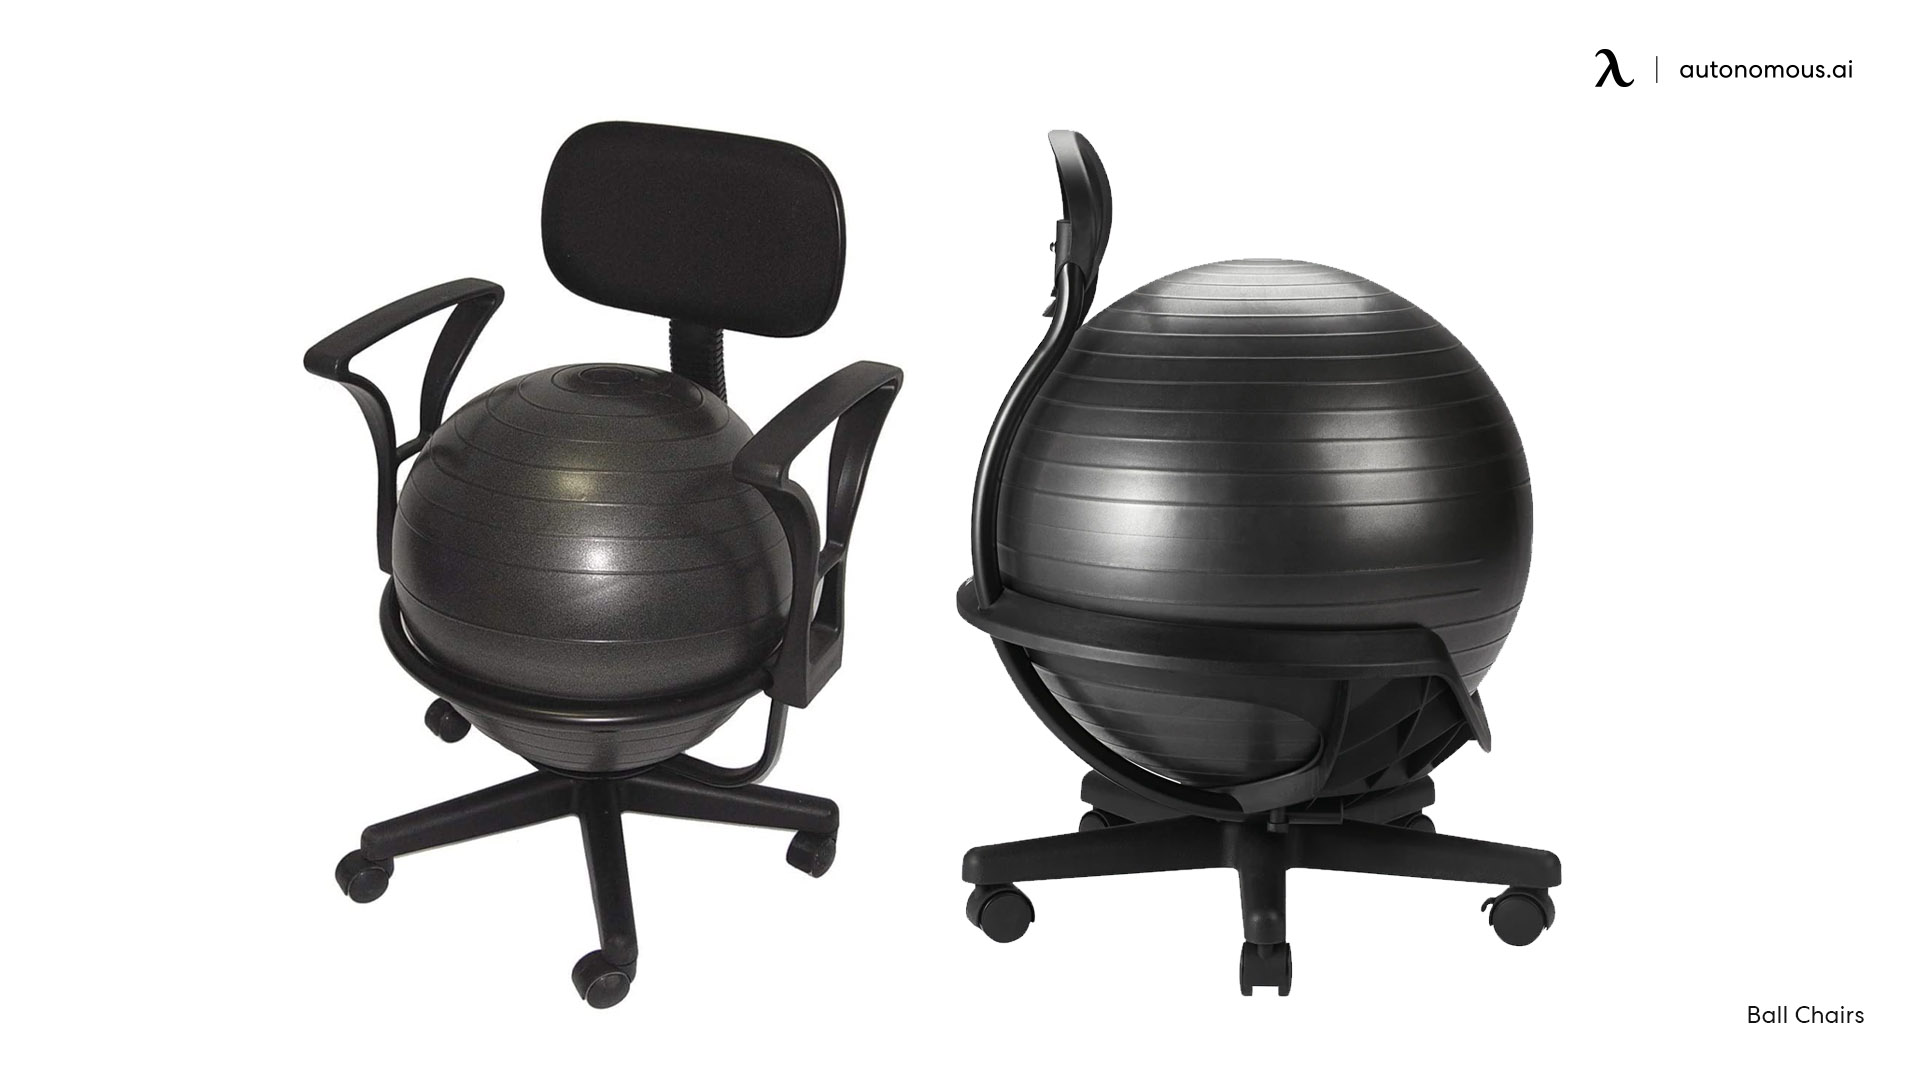 Photo of Ball Chairs